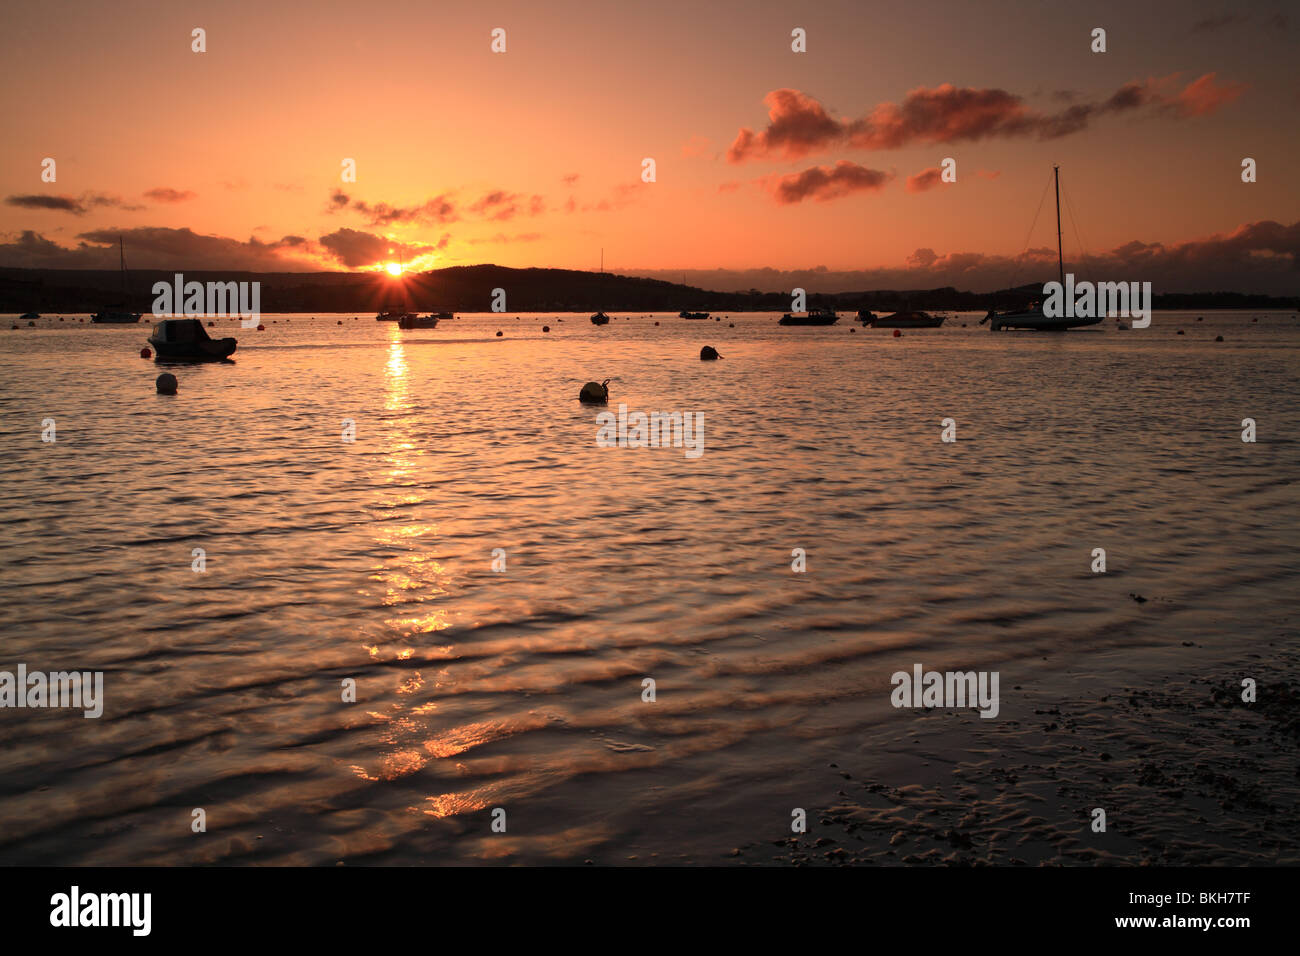 Exe estuary viewed from Shelly beach, Exmouth, Devon, England, UK - Stock Image